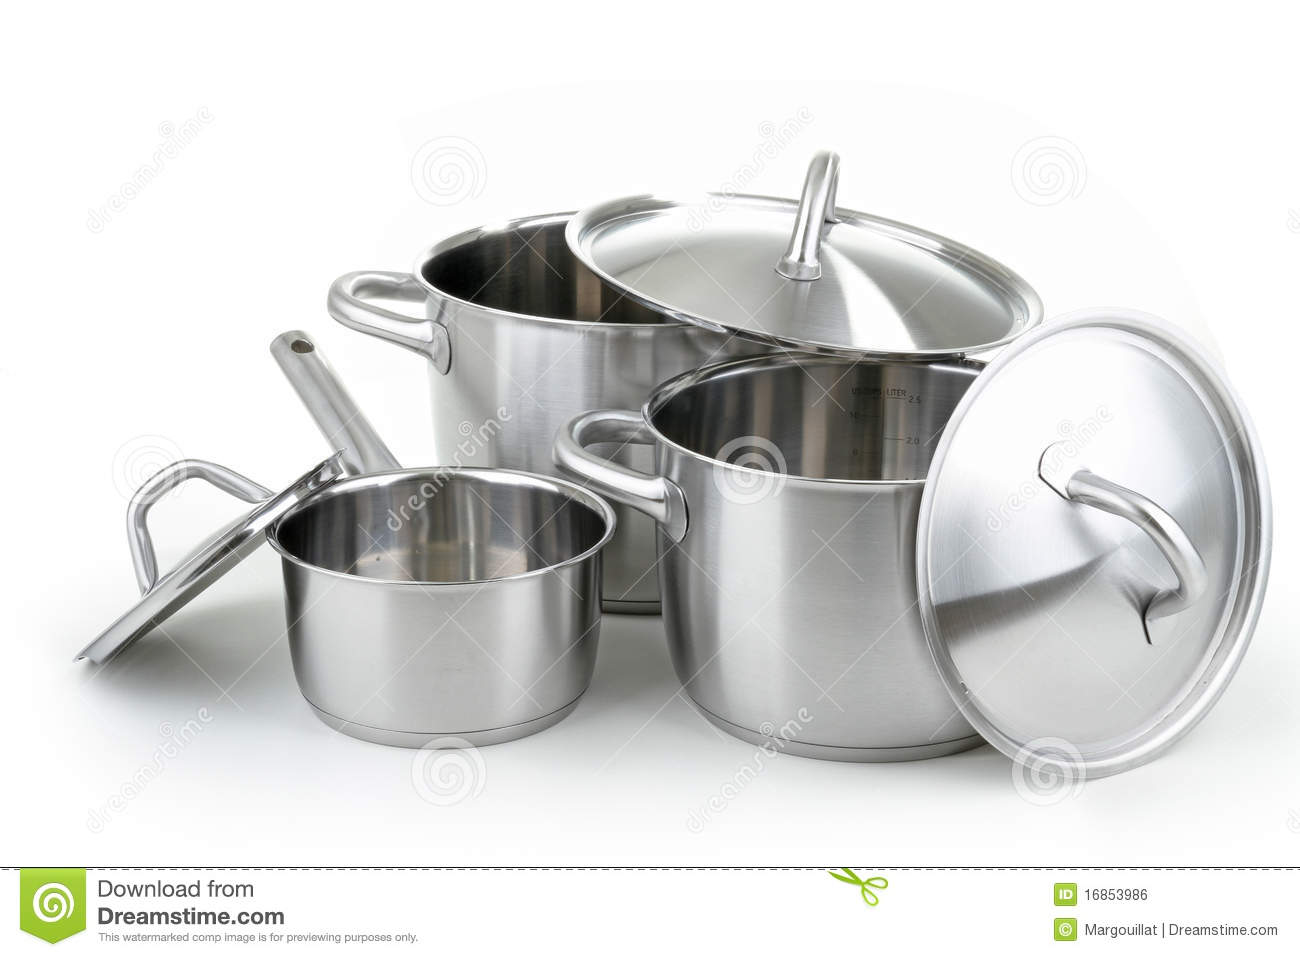 Kitchenware Stock Photos - Royalty Free Pictures